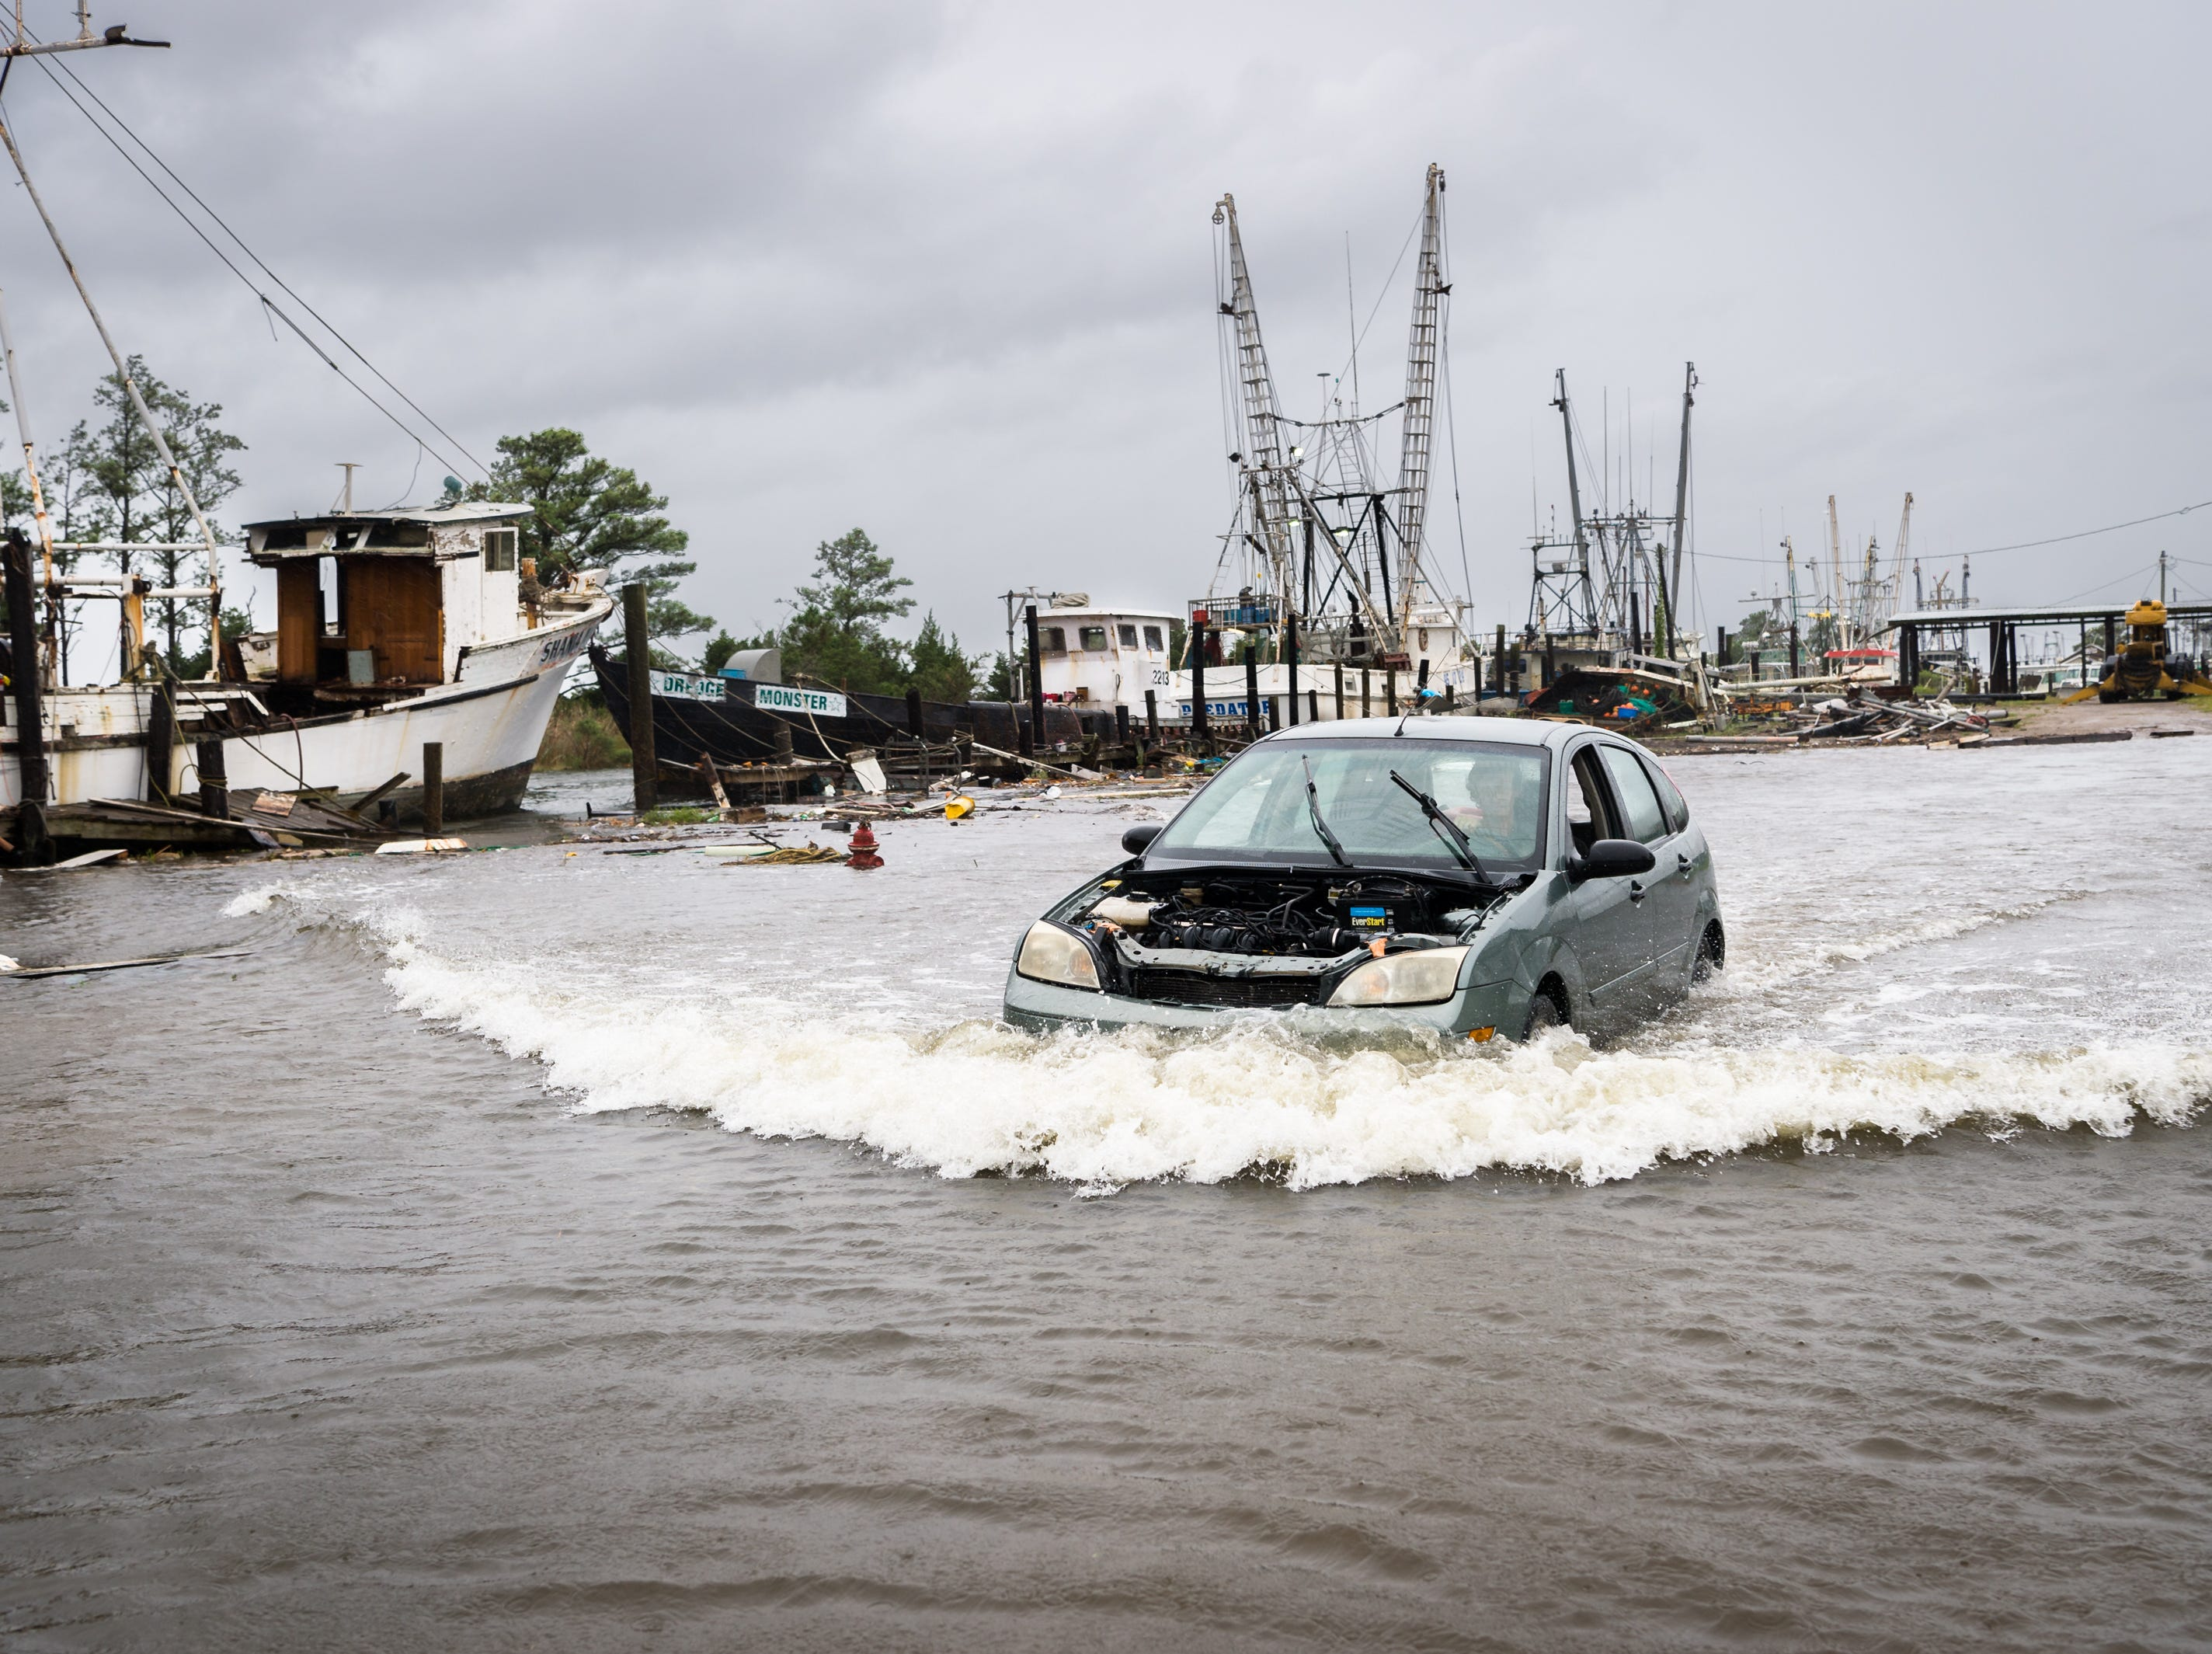 A motorist drives through a flooded area in the Swan Quarter harbor in Swan Quarter, N.C as Hurricane Florence makes landfall Sept. 13, 2018.